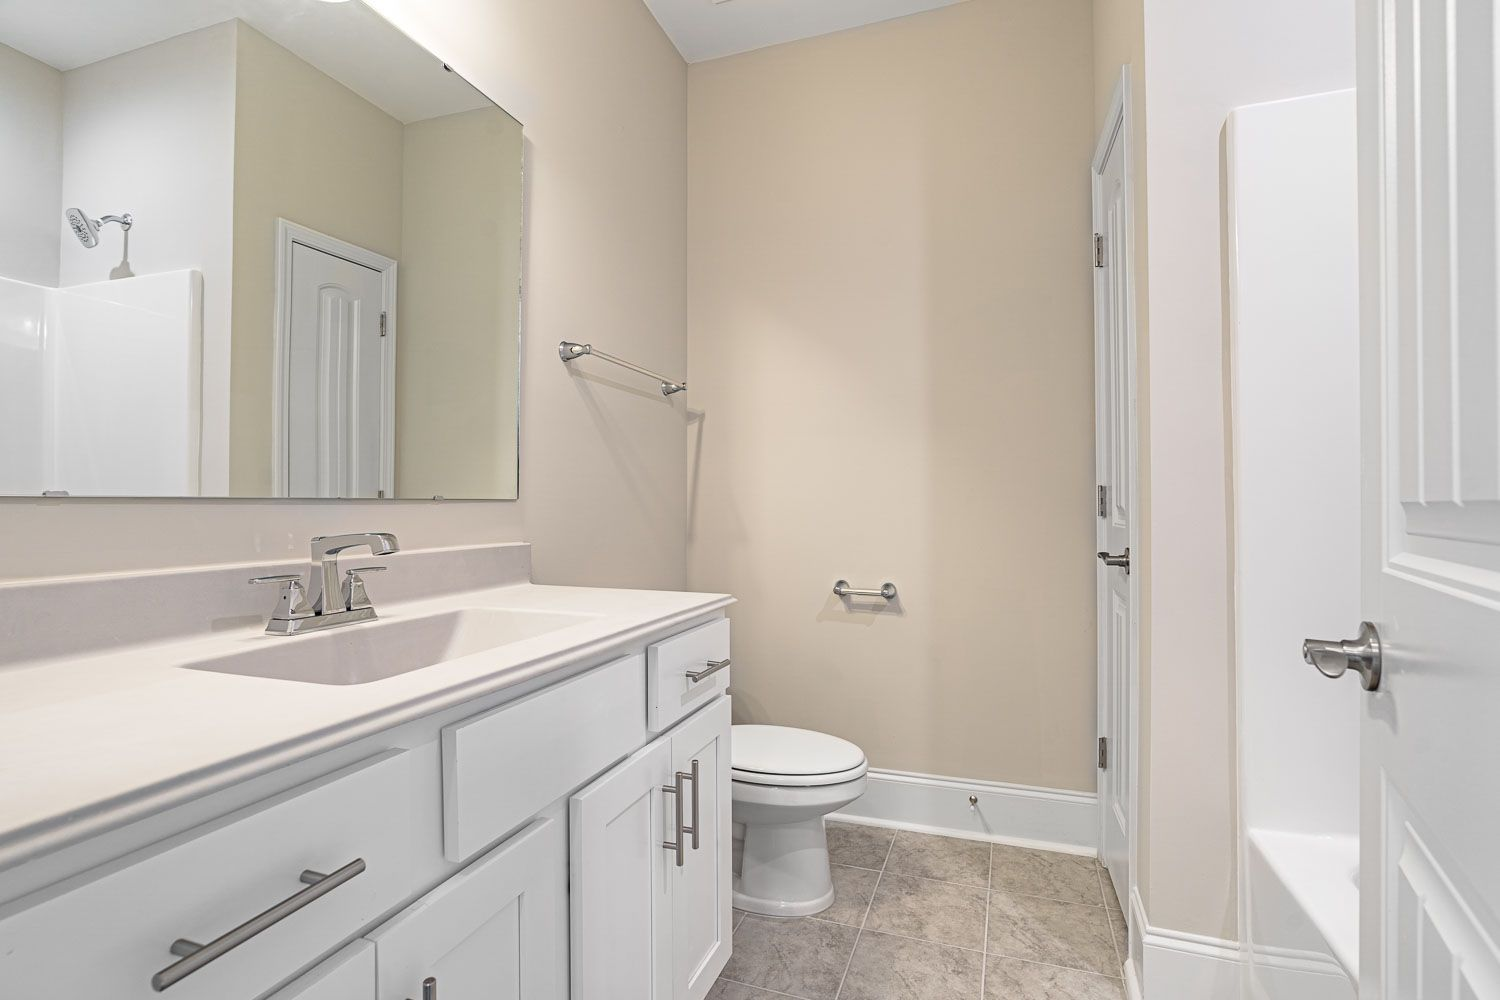 Bathroom featured in the Portico Bungalow By McKee Homes in Wilmington, NC